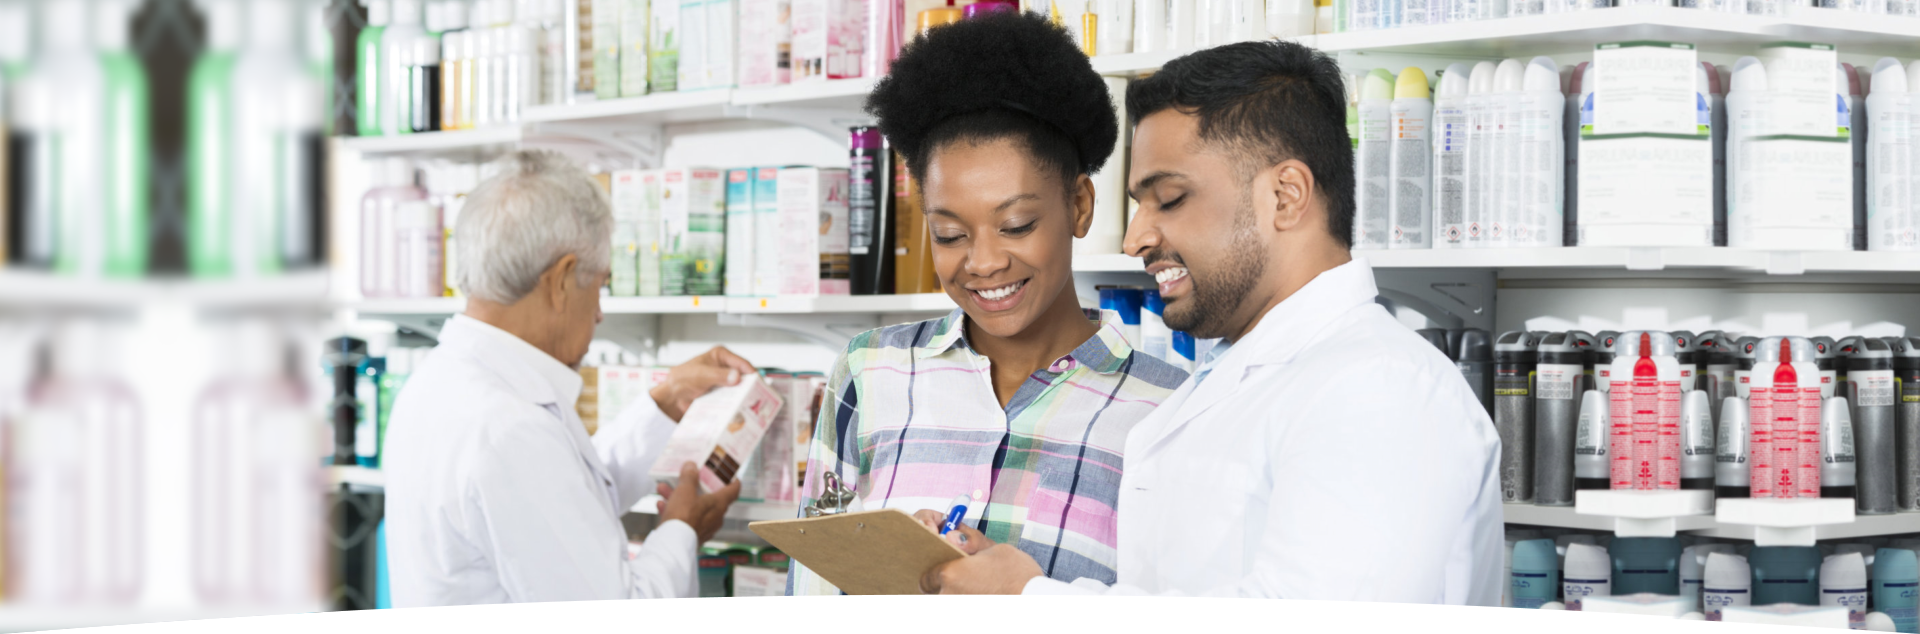 Pharmacist and customer in pharmacy